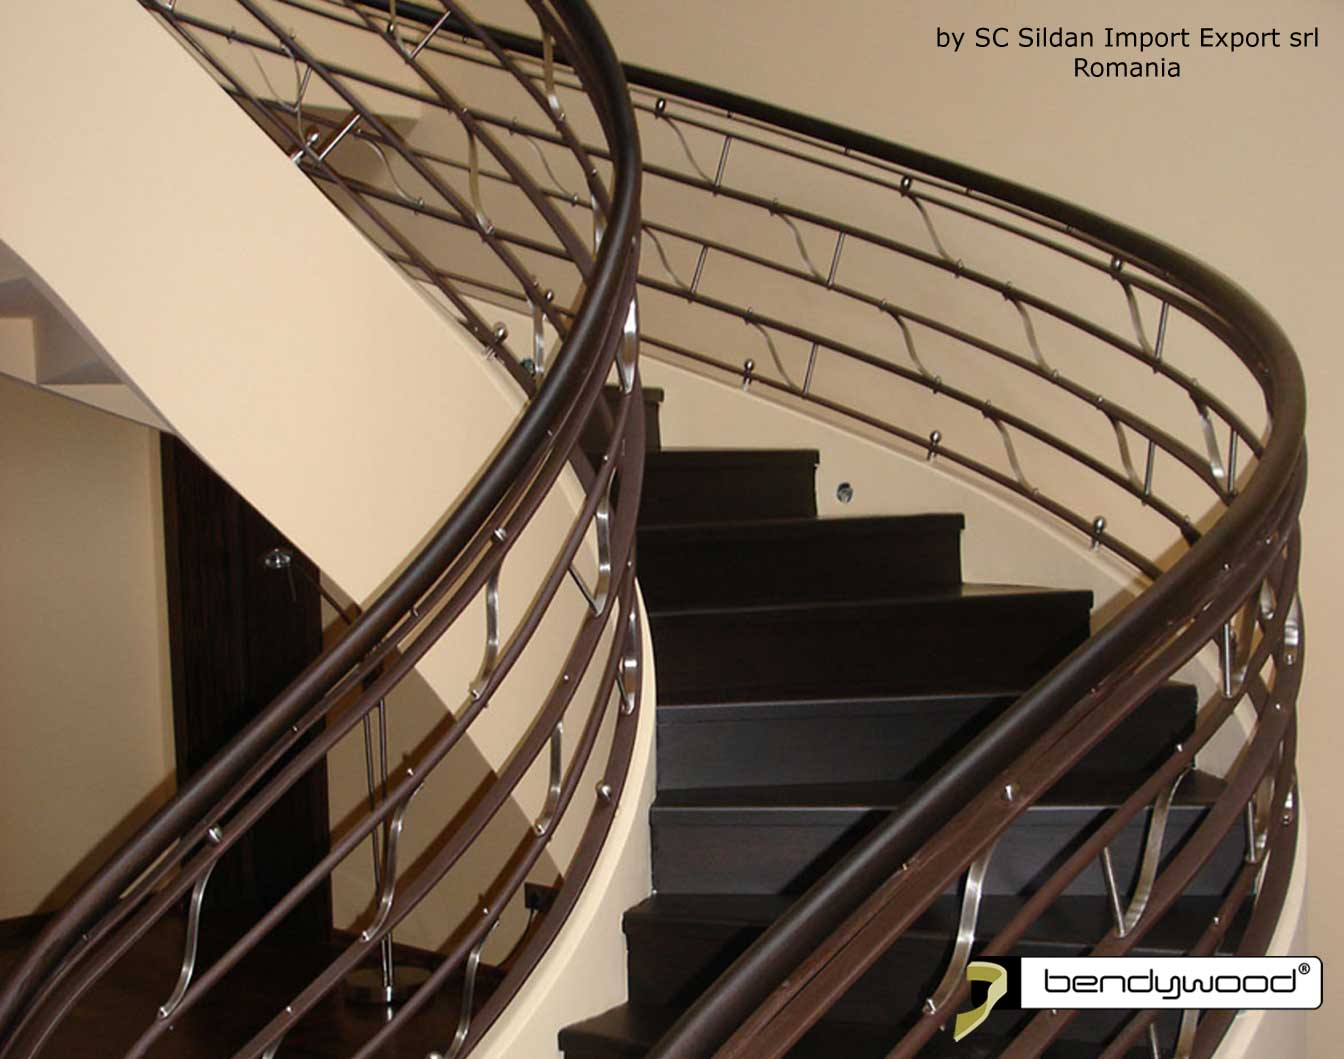 Bending wood Bendywood® - curved stair railing in solid wood